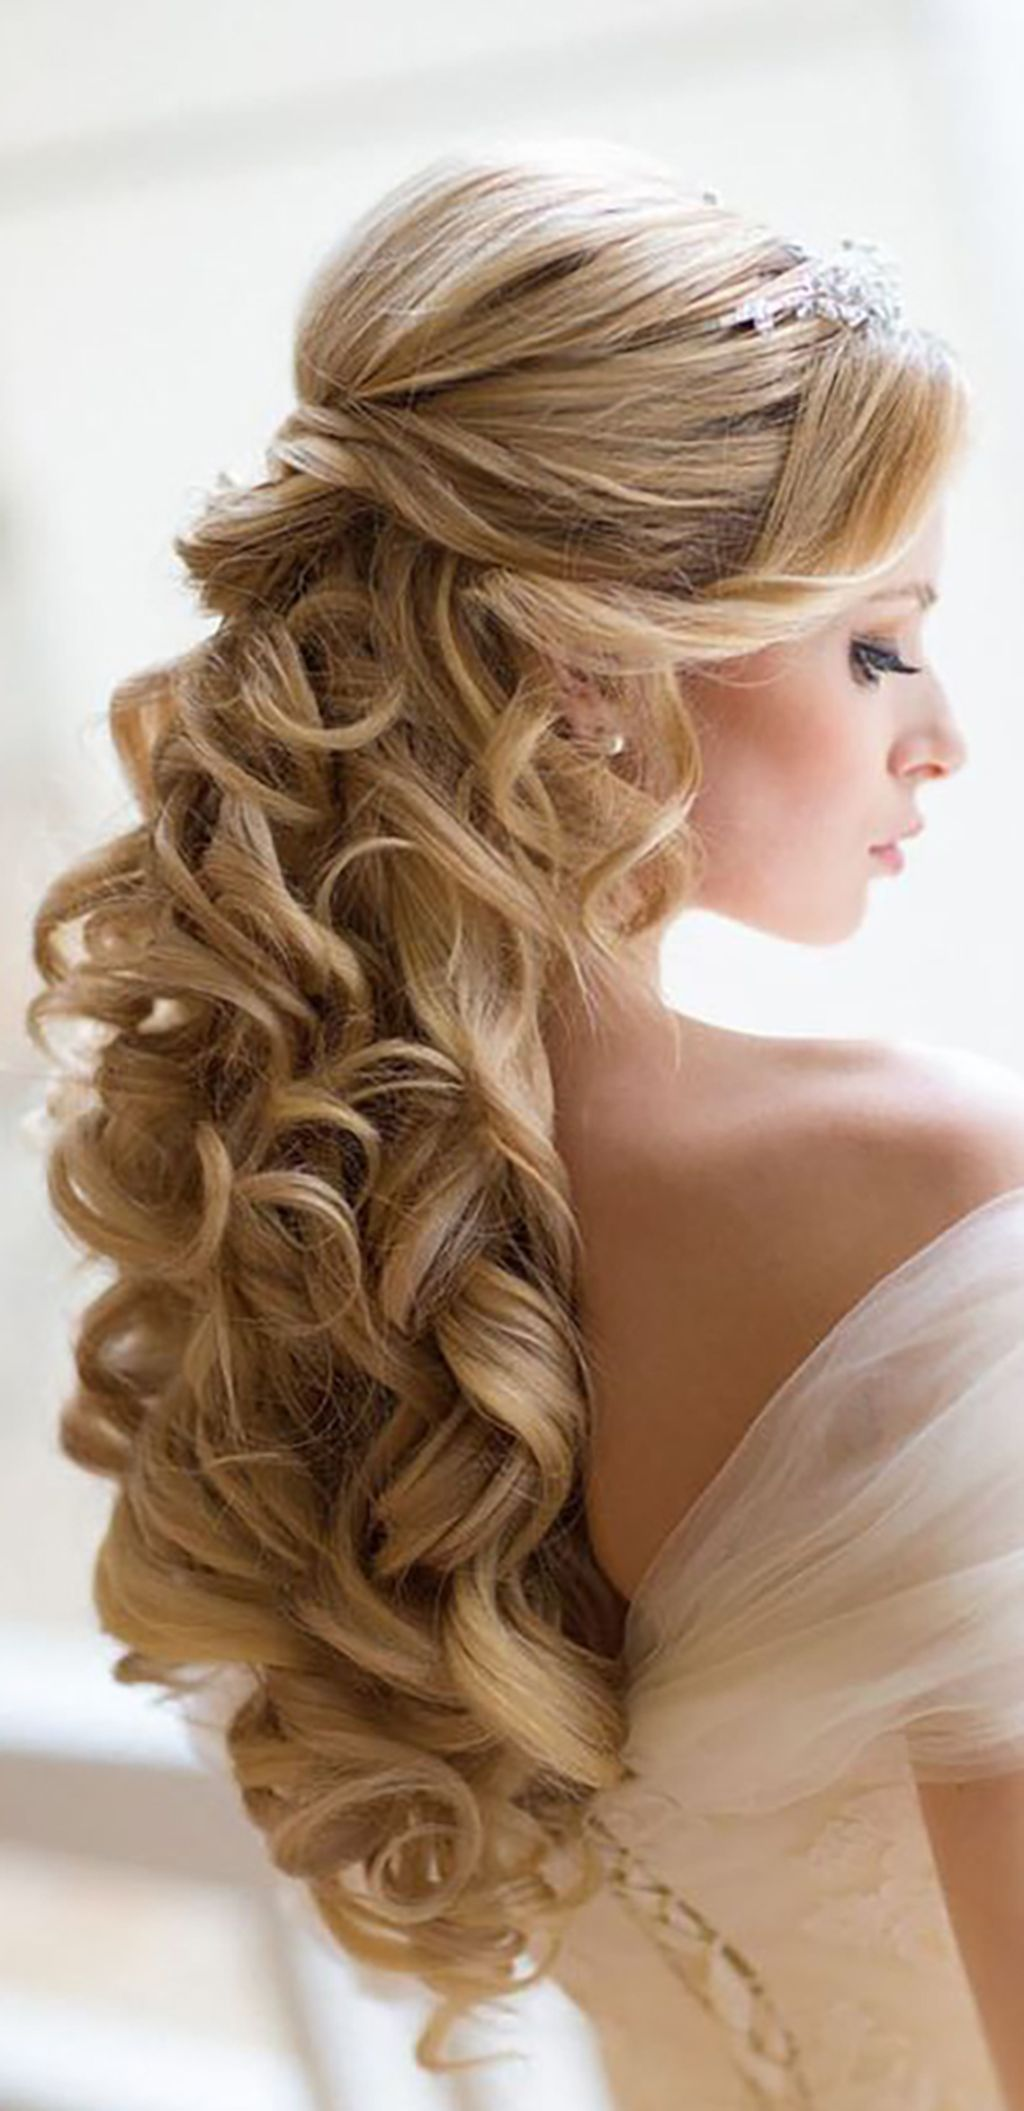 pin by julie shumpert on wedding hair and makeup | wedding